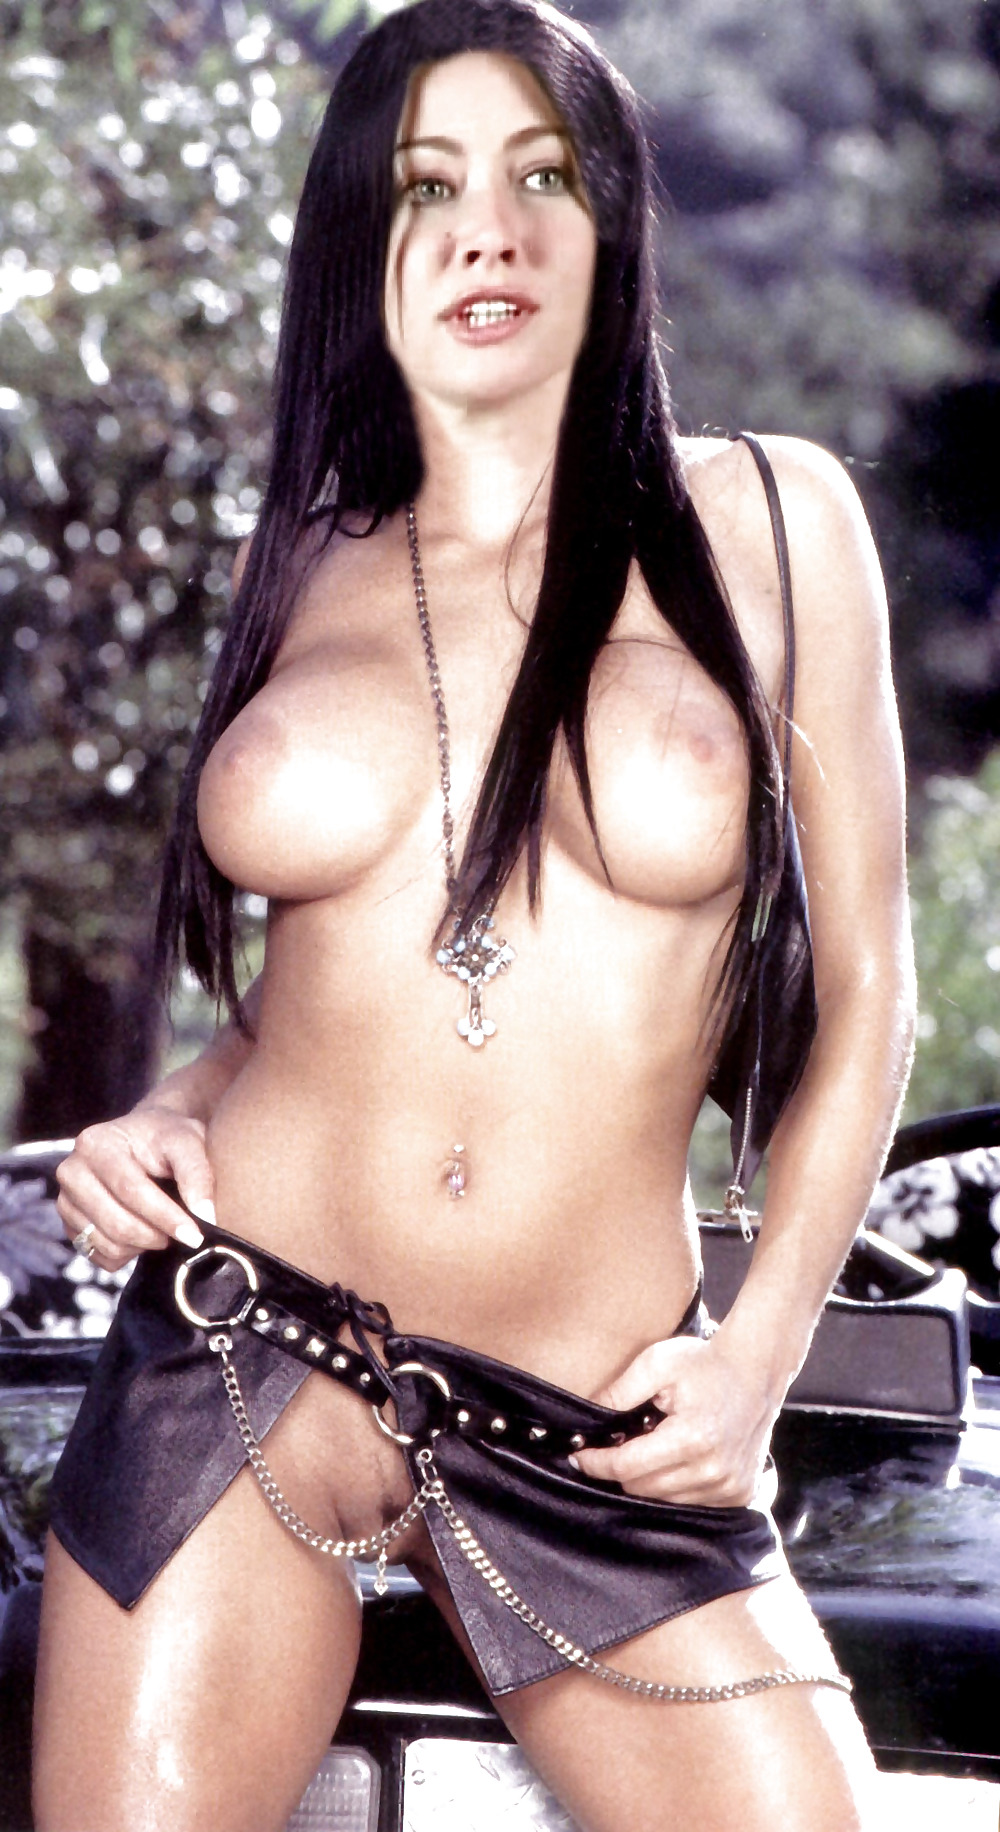 shannen-doherty-naked-showing-pussy